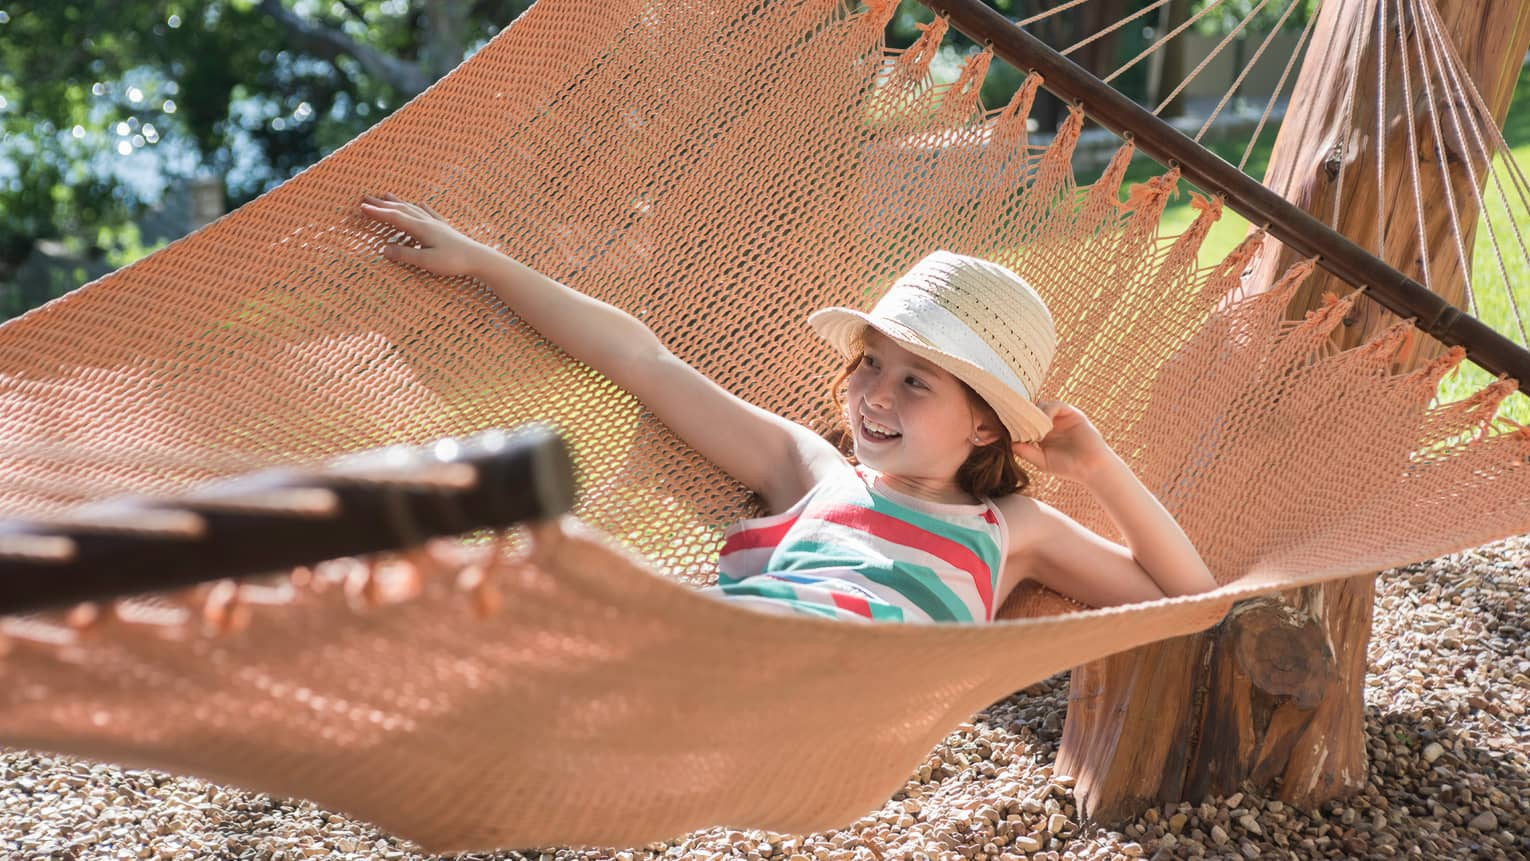 Young girl with straw hat lies in large hammock